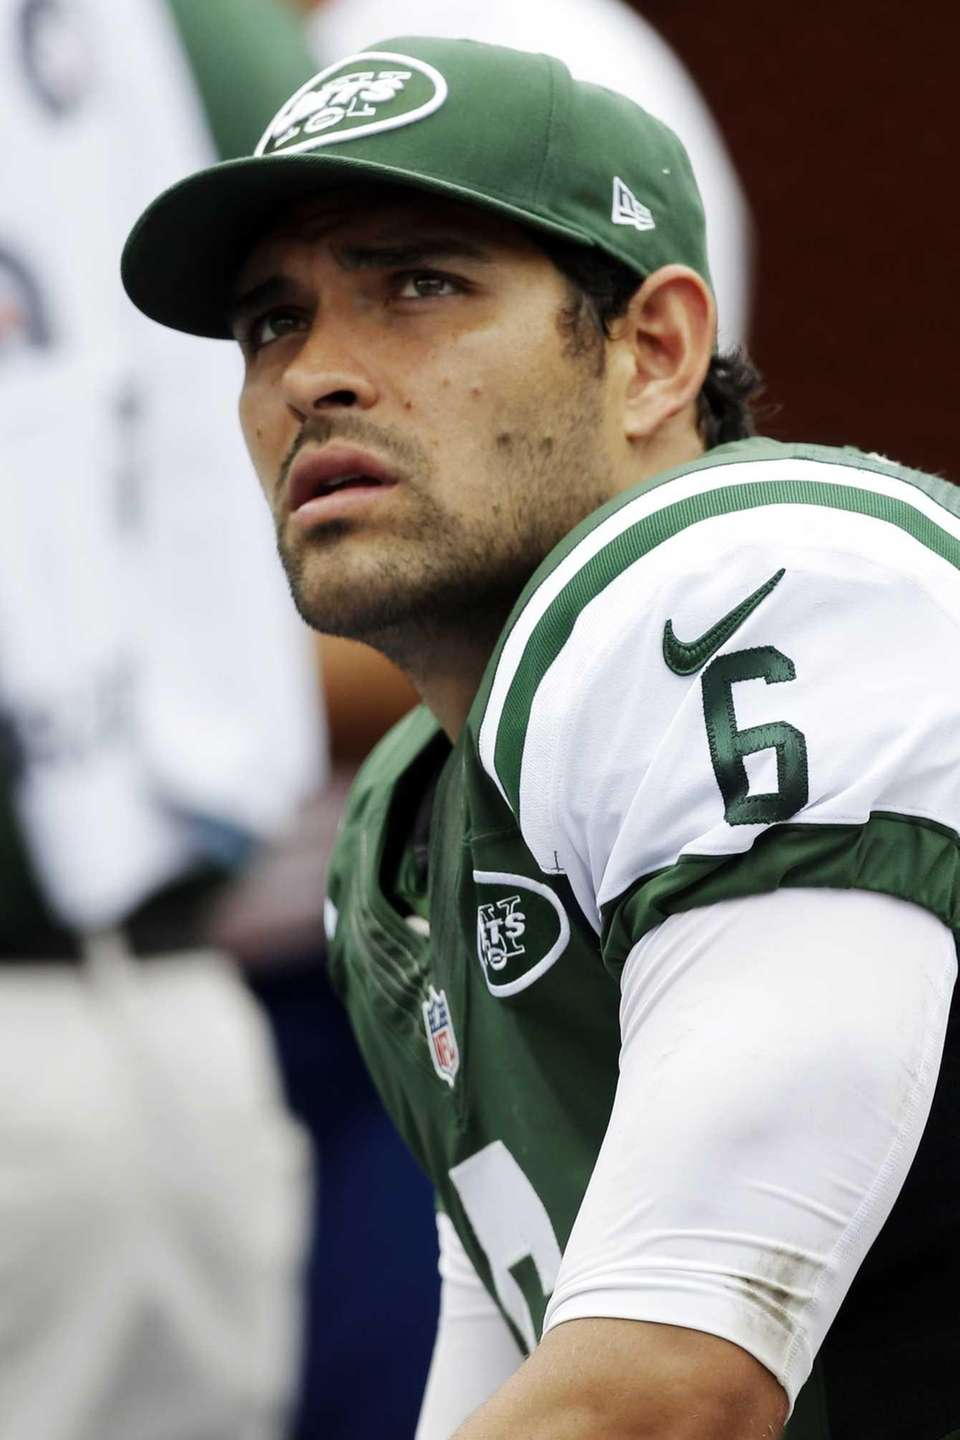 Jets quarterback Mark Sanchez looks up from the